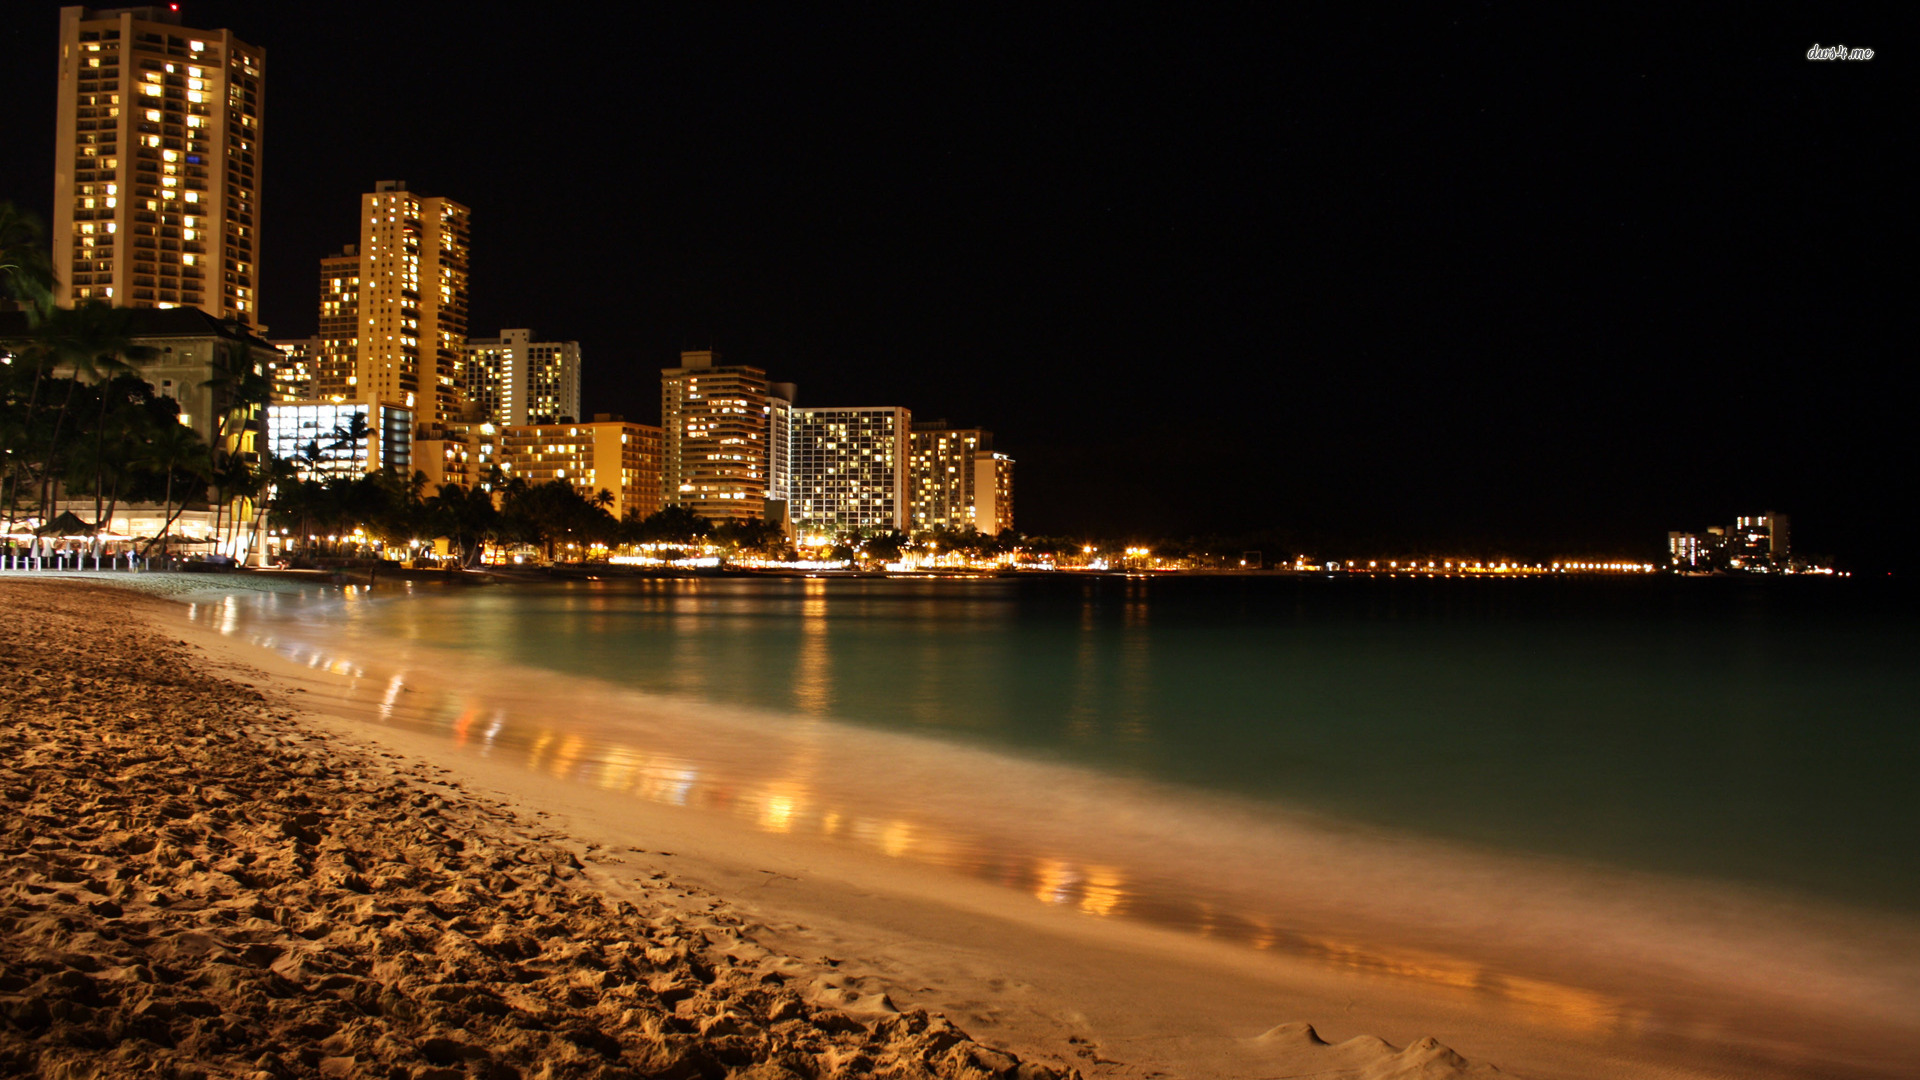 beach at night wallpaper - wallpapersafari